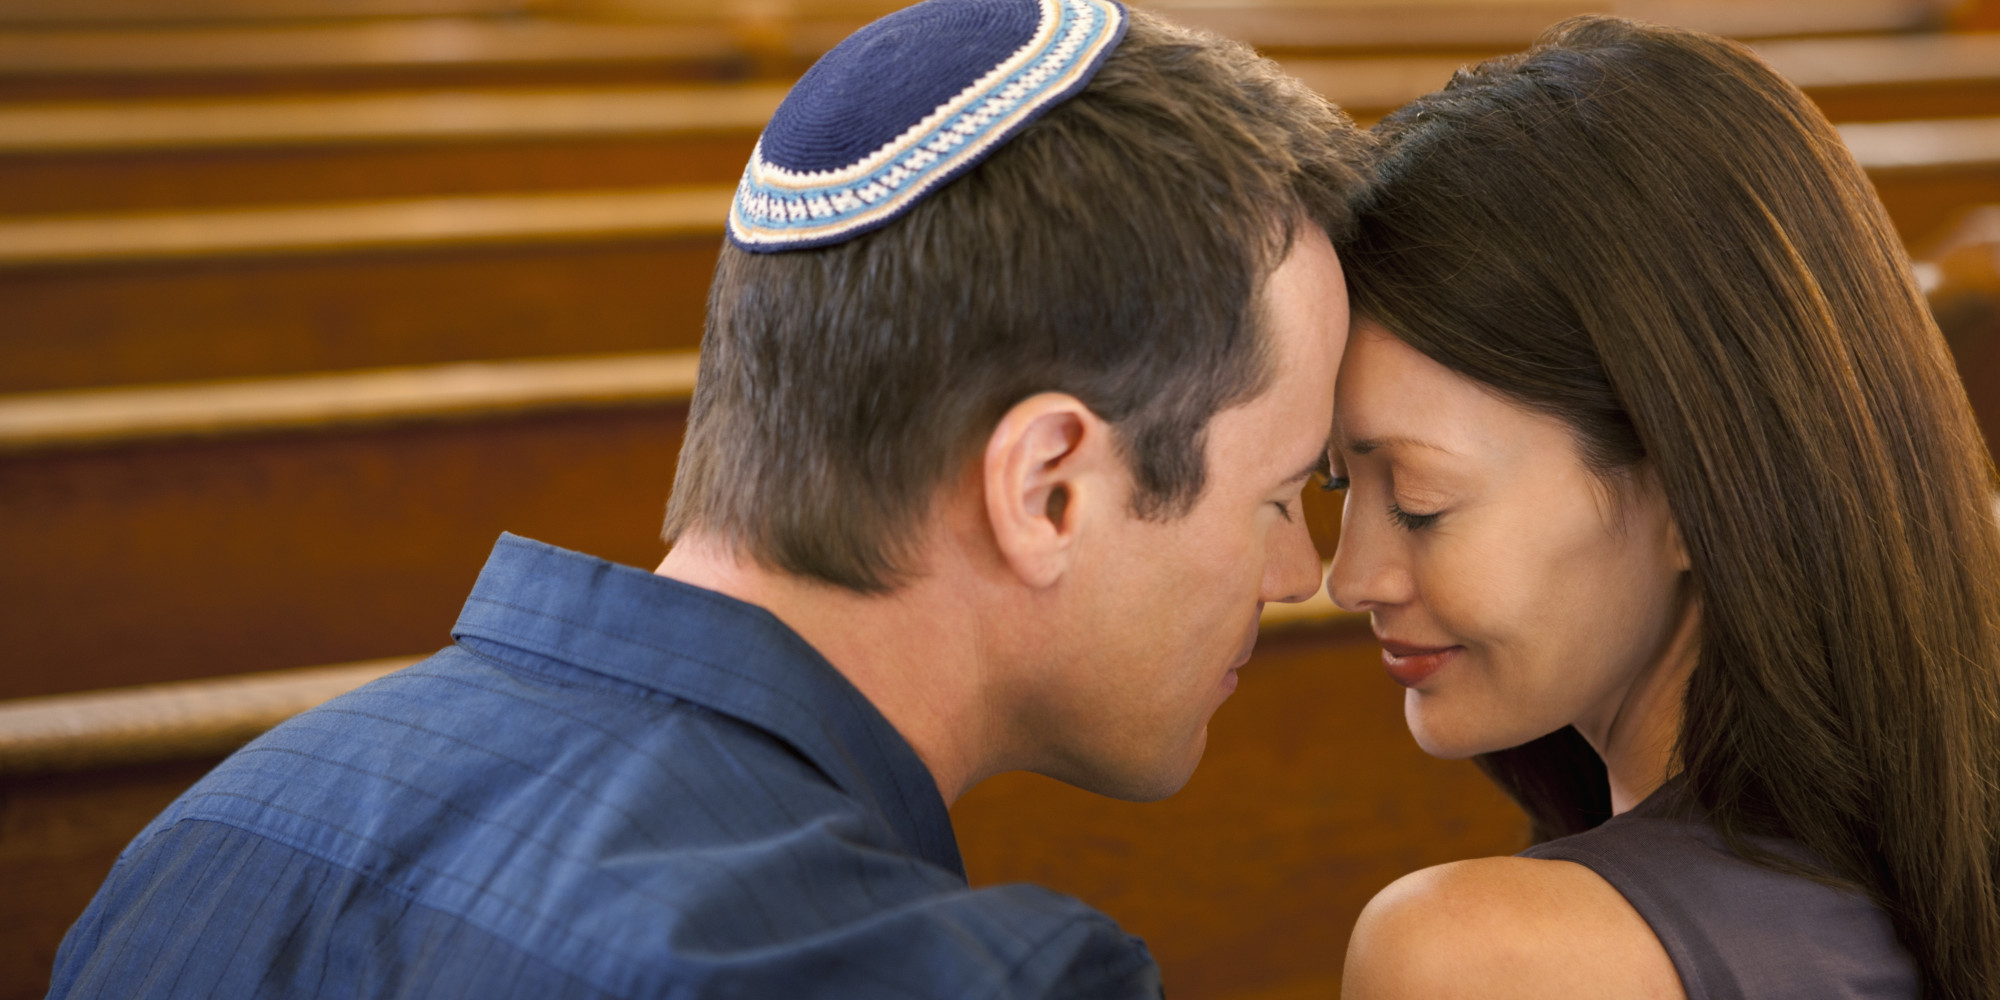 parsonsfield jewish single women Meet jewish singles close by for dating and marriage at jmatchcom.